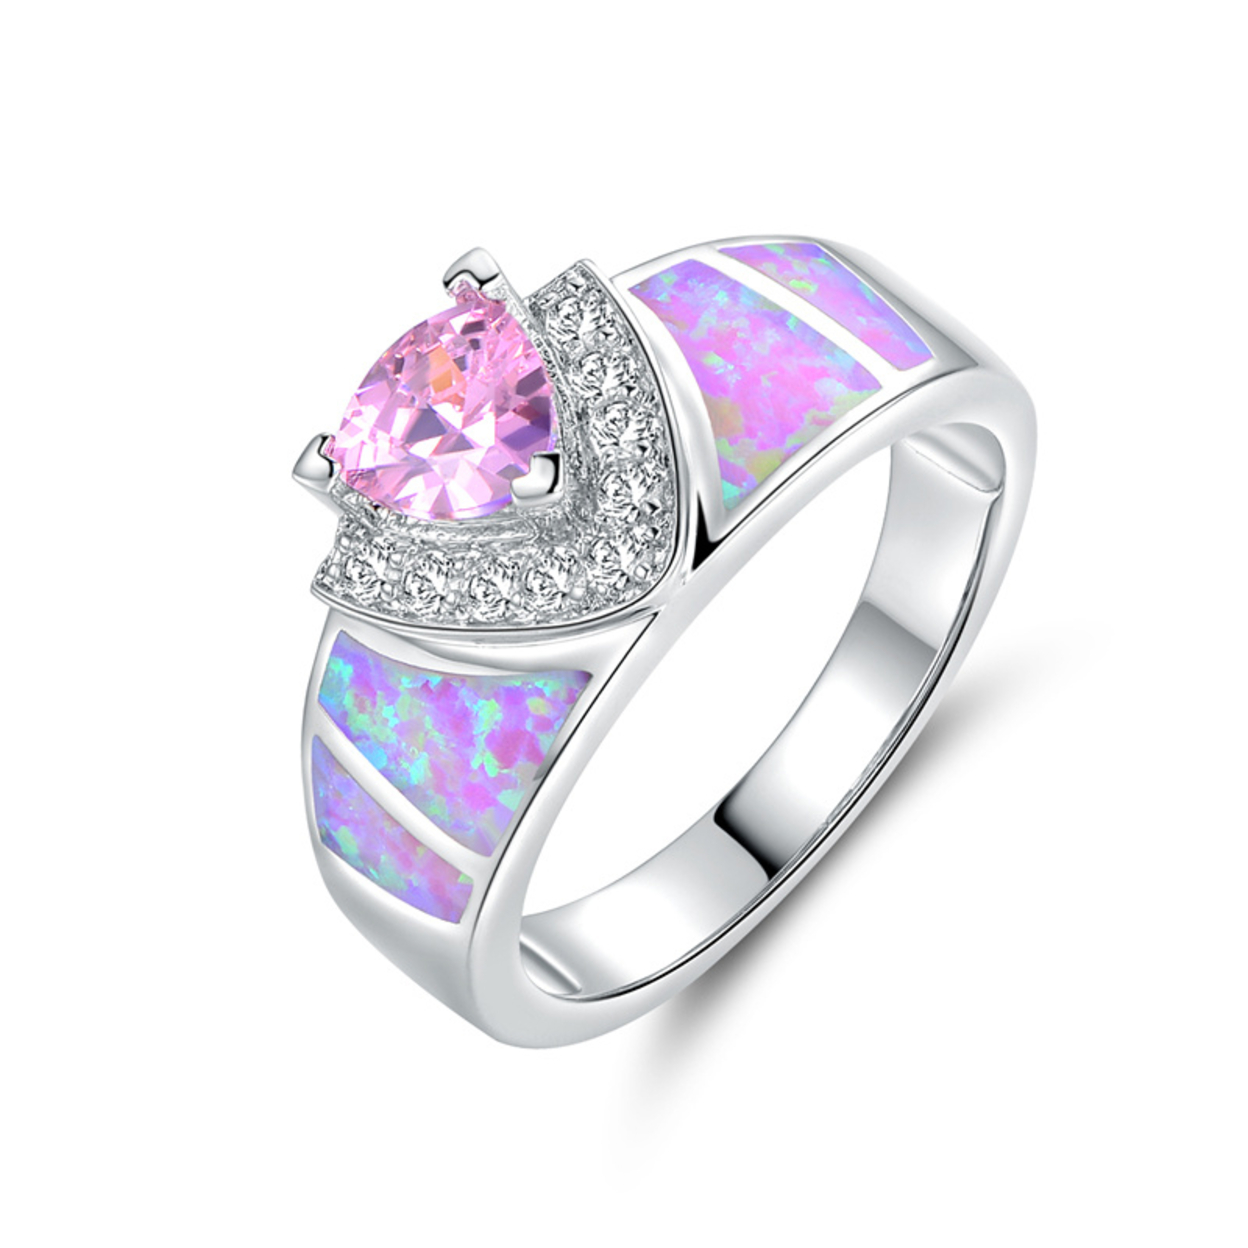 18k White Gold Plated Pink Fire Opal & Pink Cz Trillion-cut Ring (r1681) Size 5